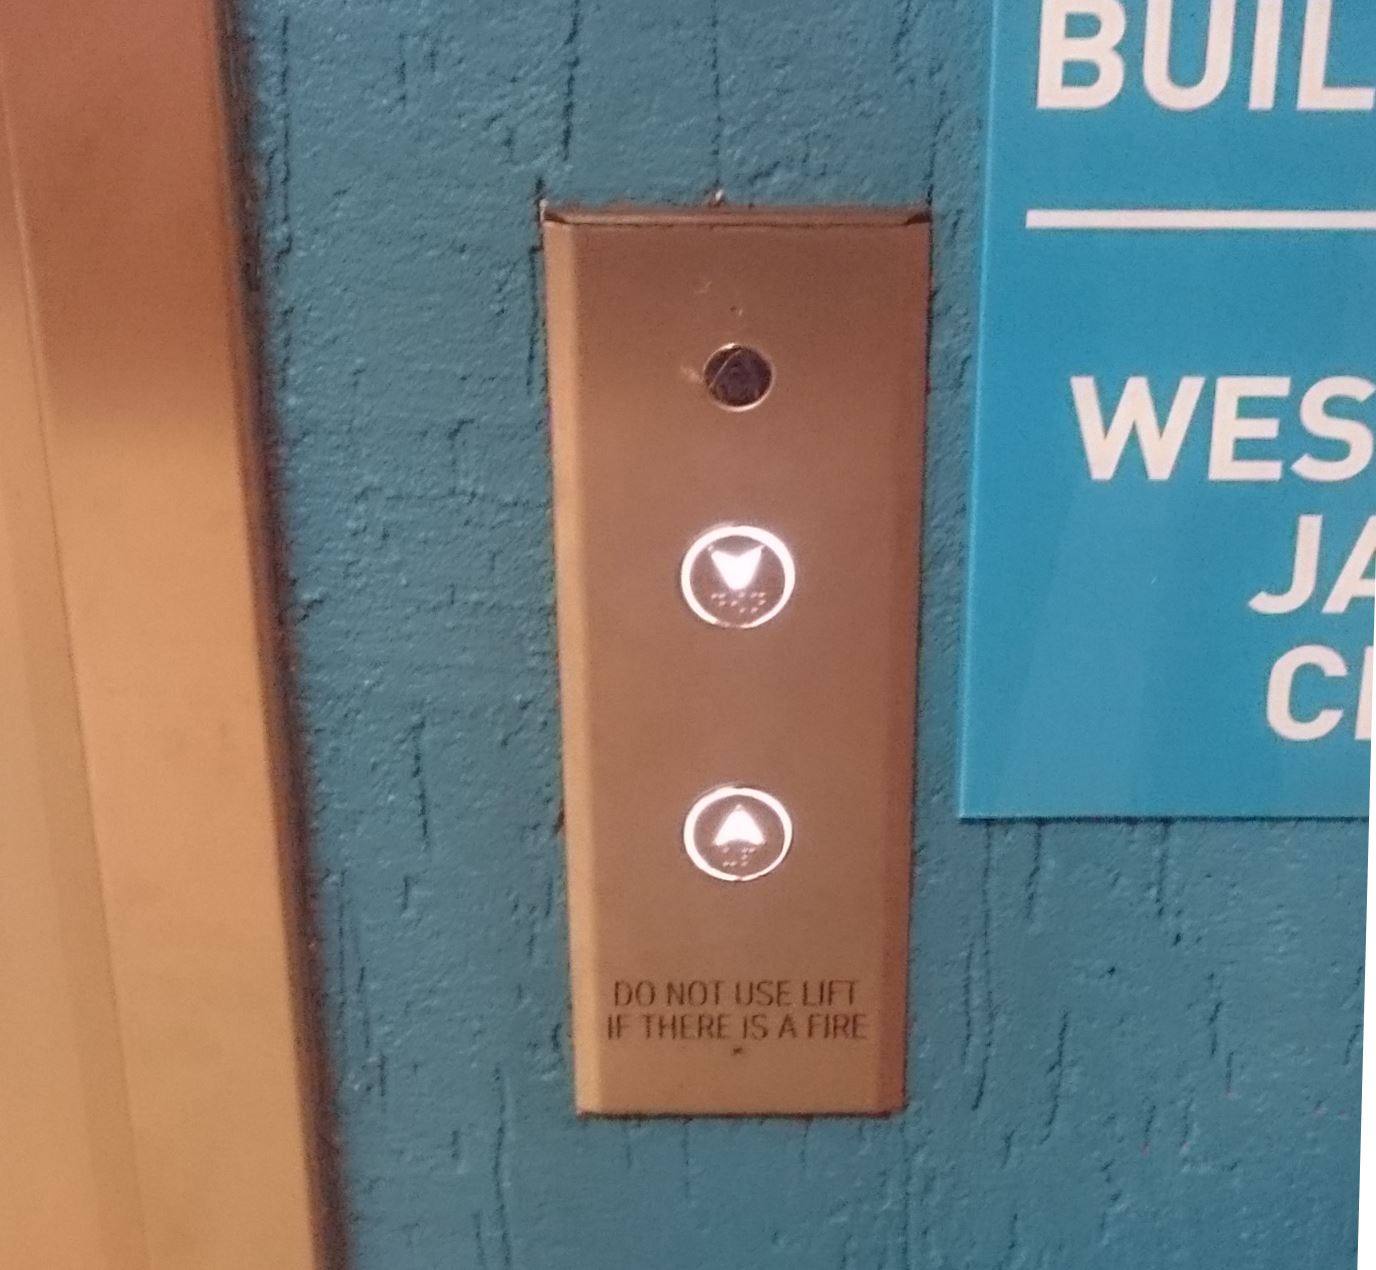 16-Inverted-elevator-buttons